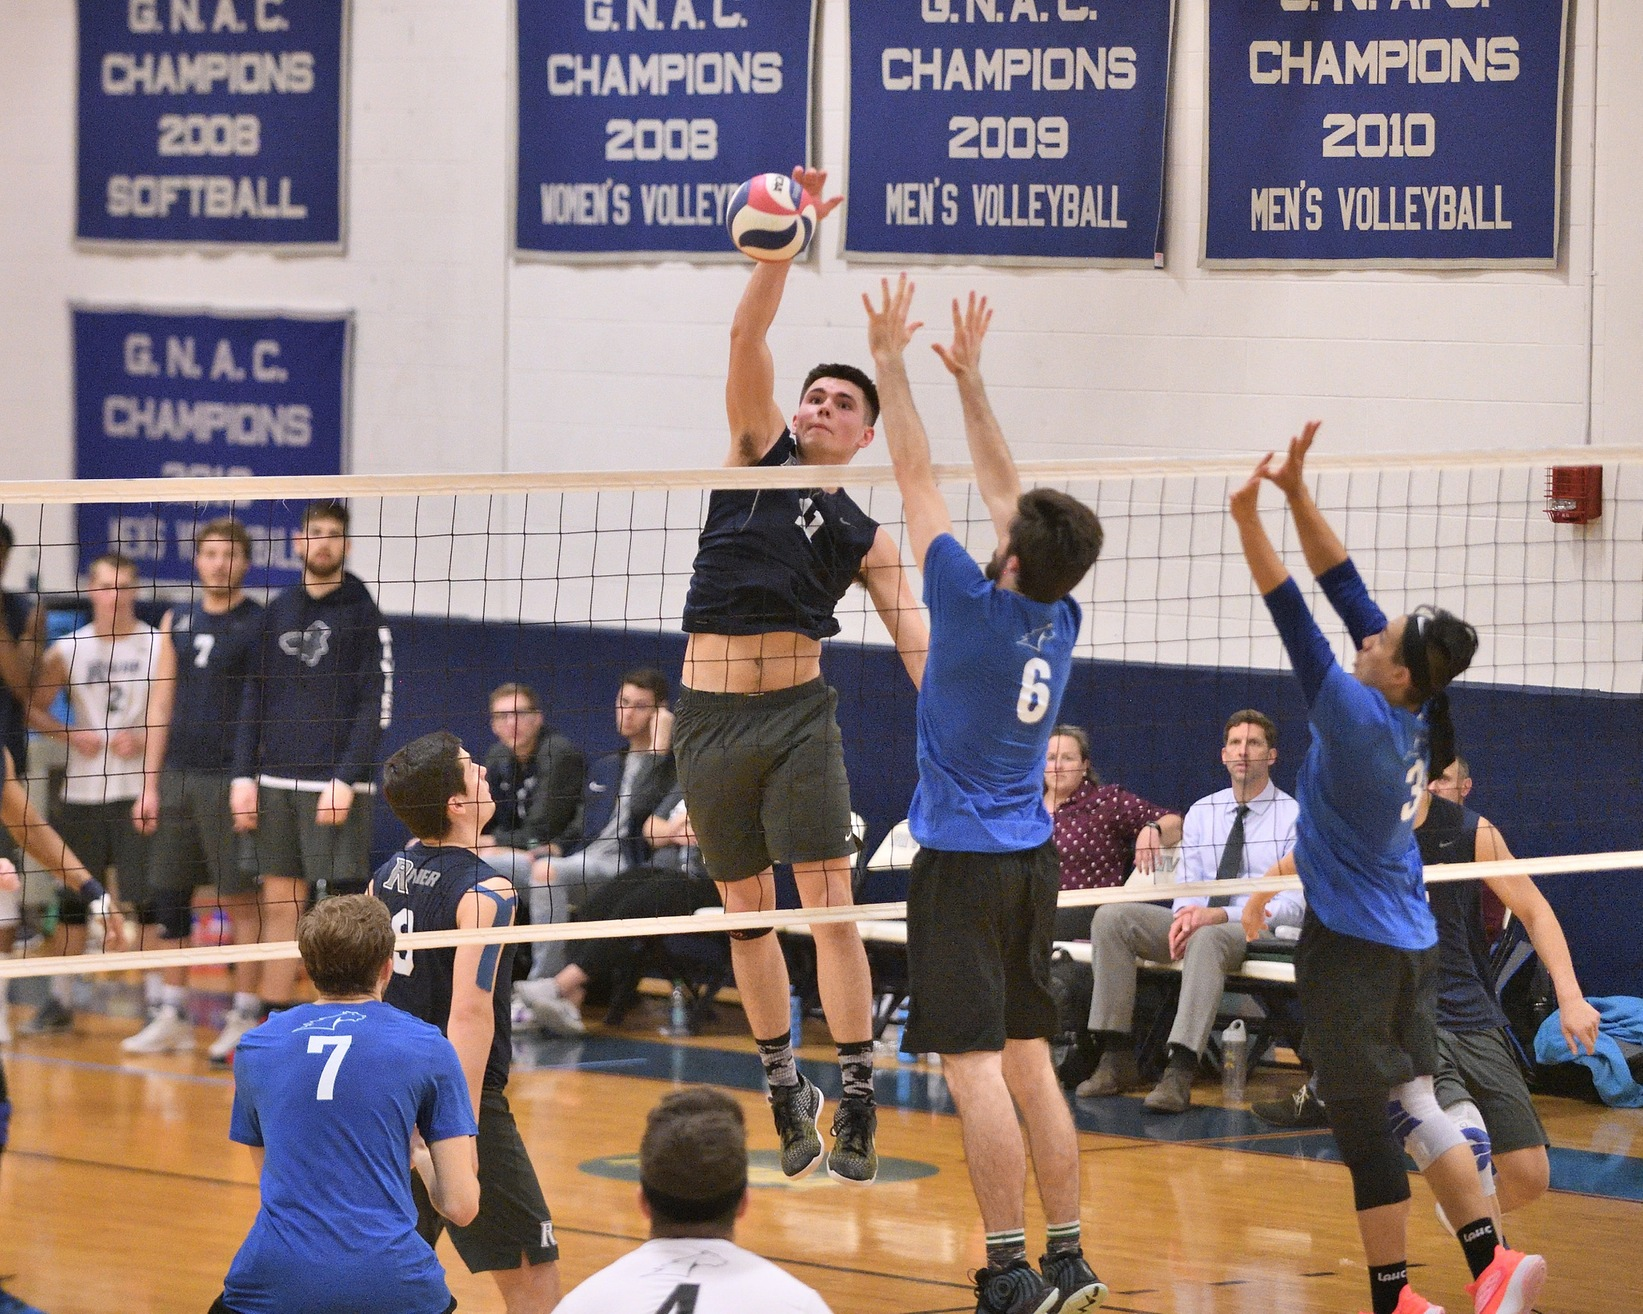 Men's Volleyball: Raiders pounce on Lions, 3-0